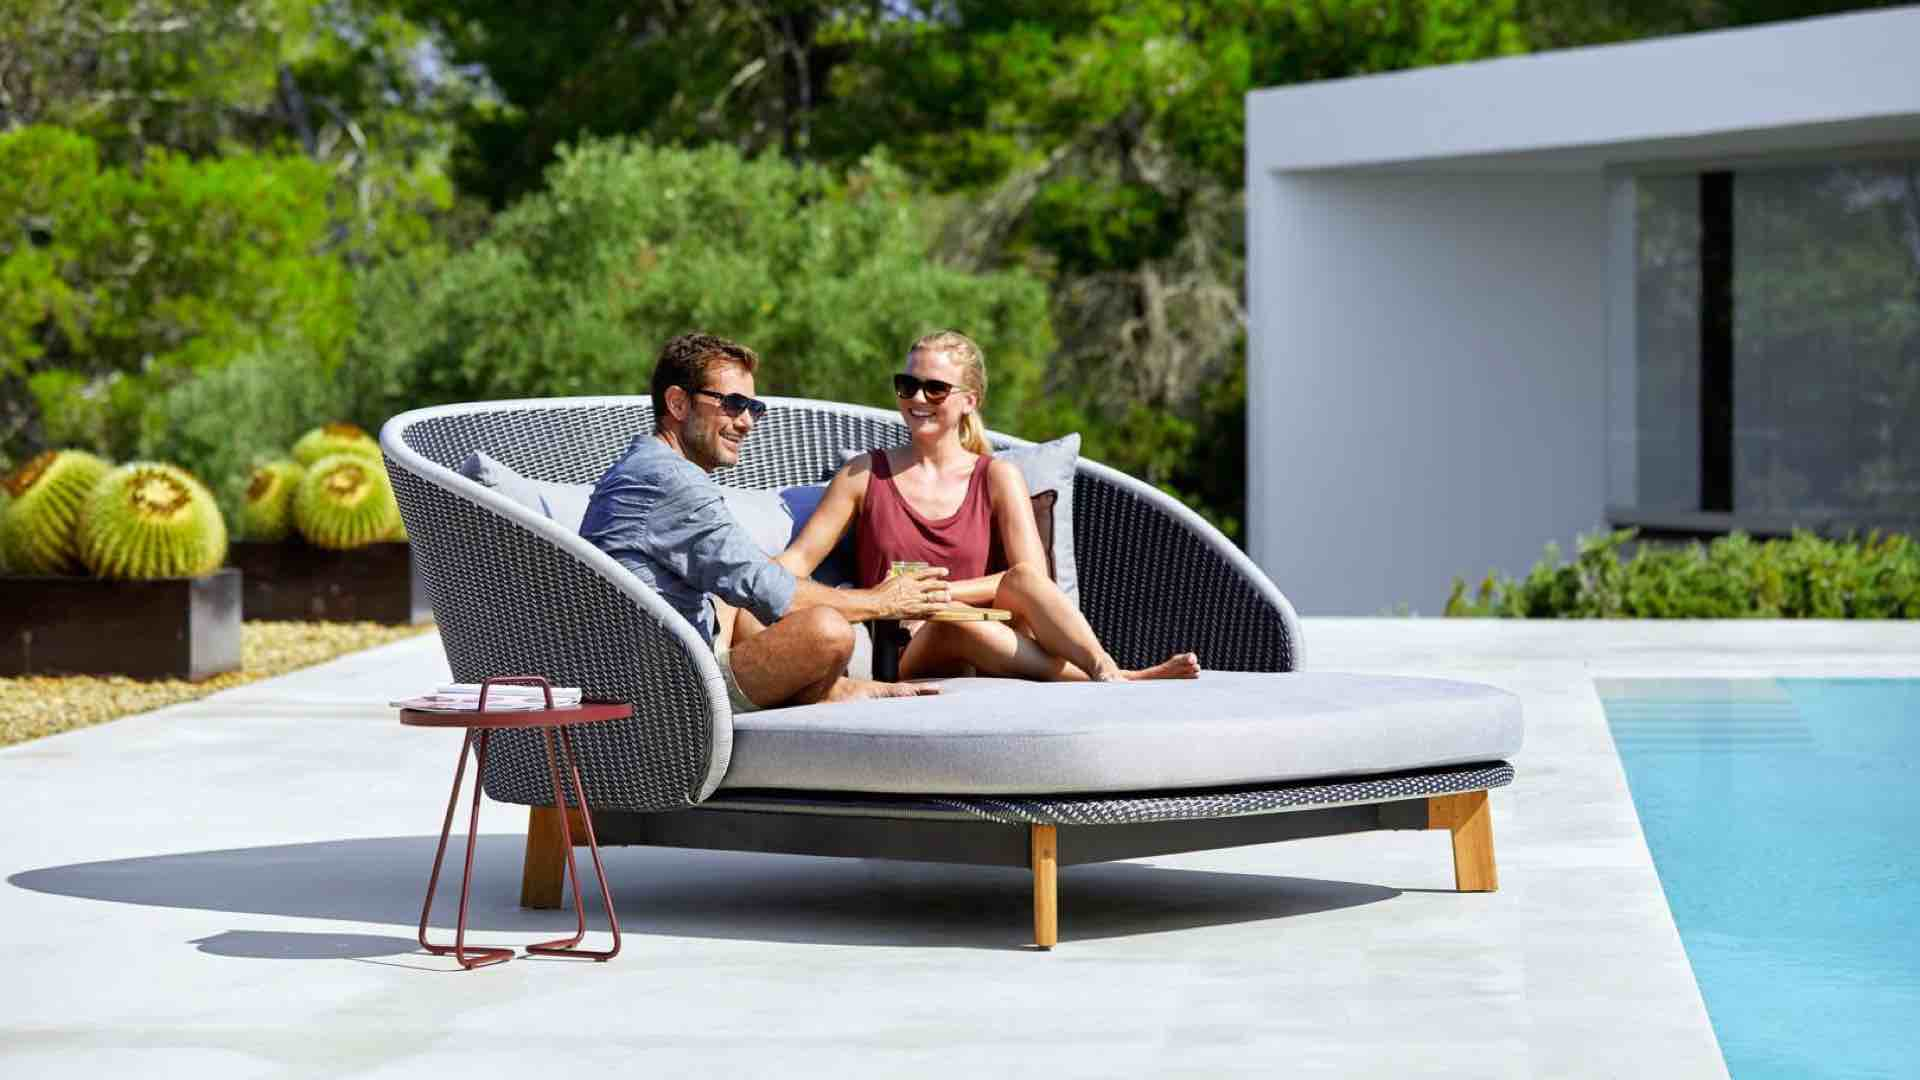 - Cane-line Outdoor Daybed FT Felix Thonet Shop